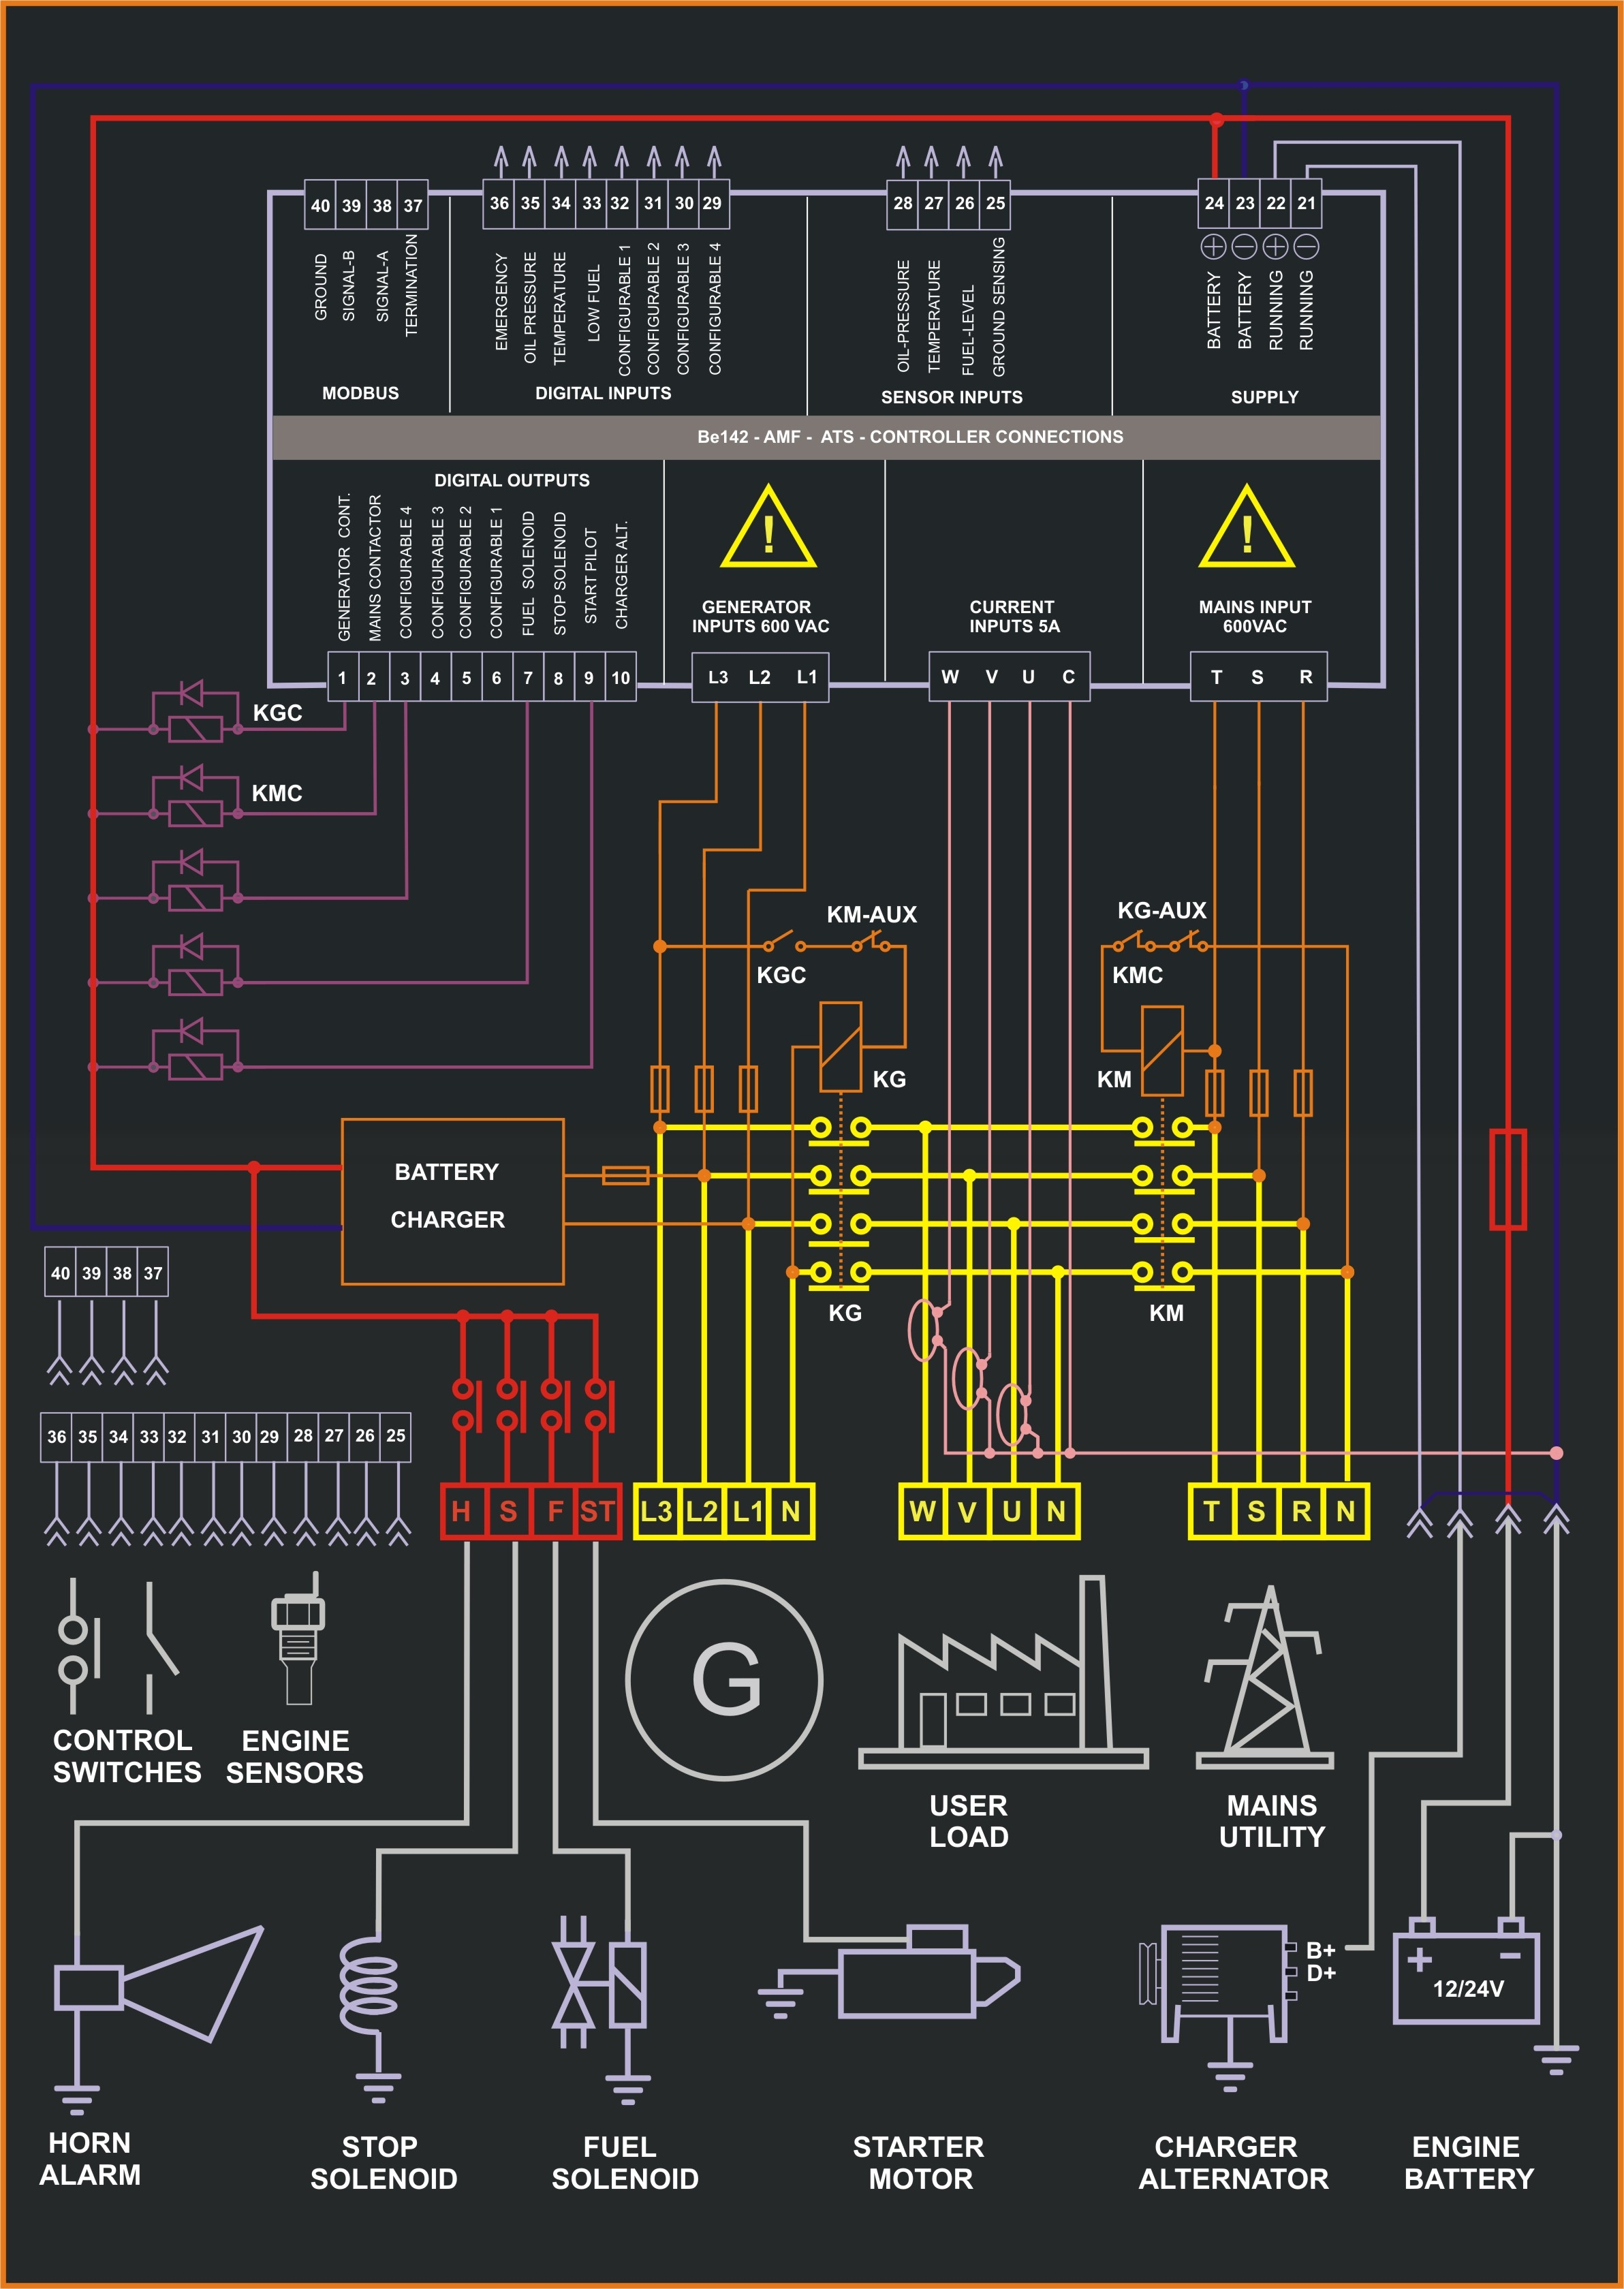 Control panel circuit diagram pdf control panel circuit diagram genset controller control panel wiring at fashall.co